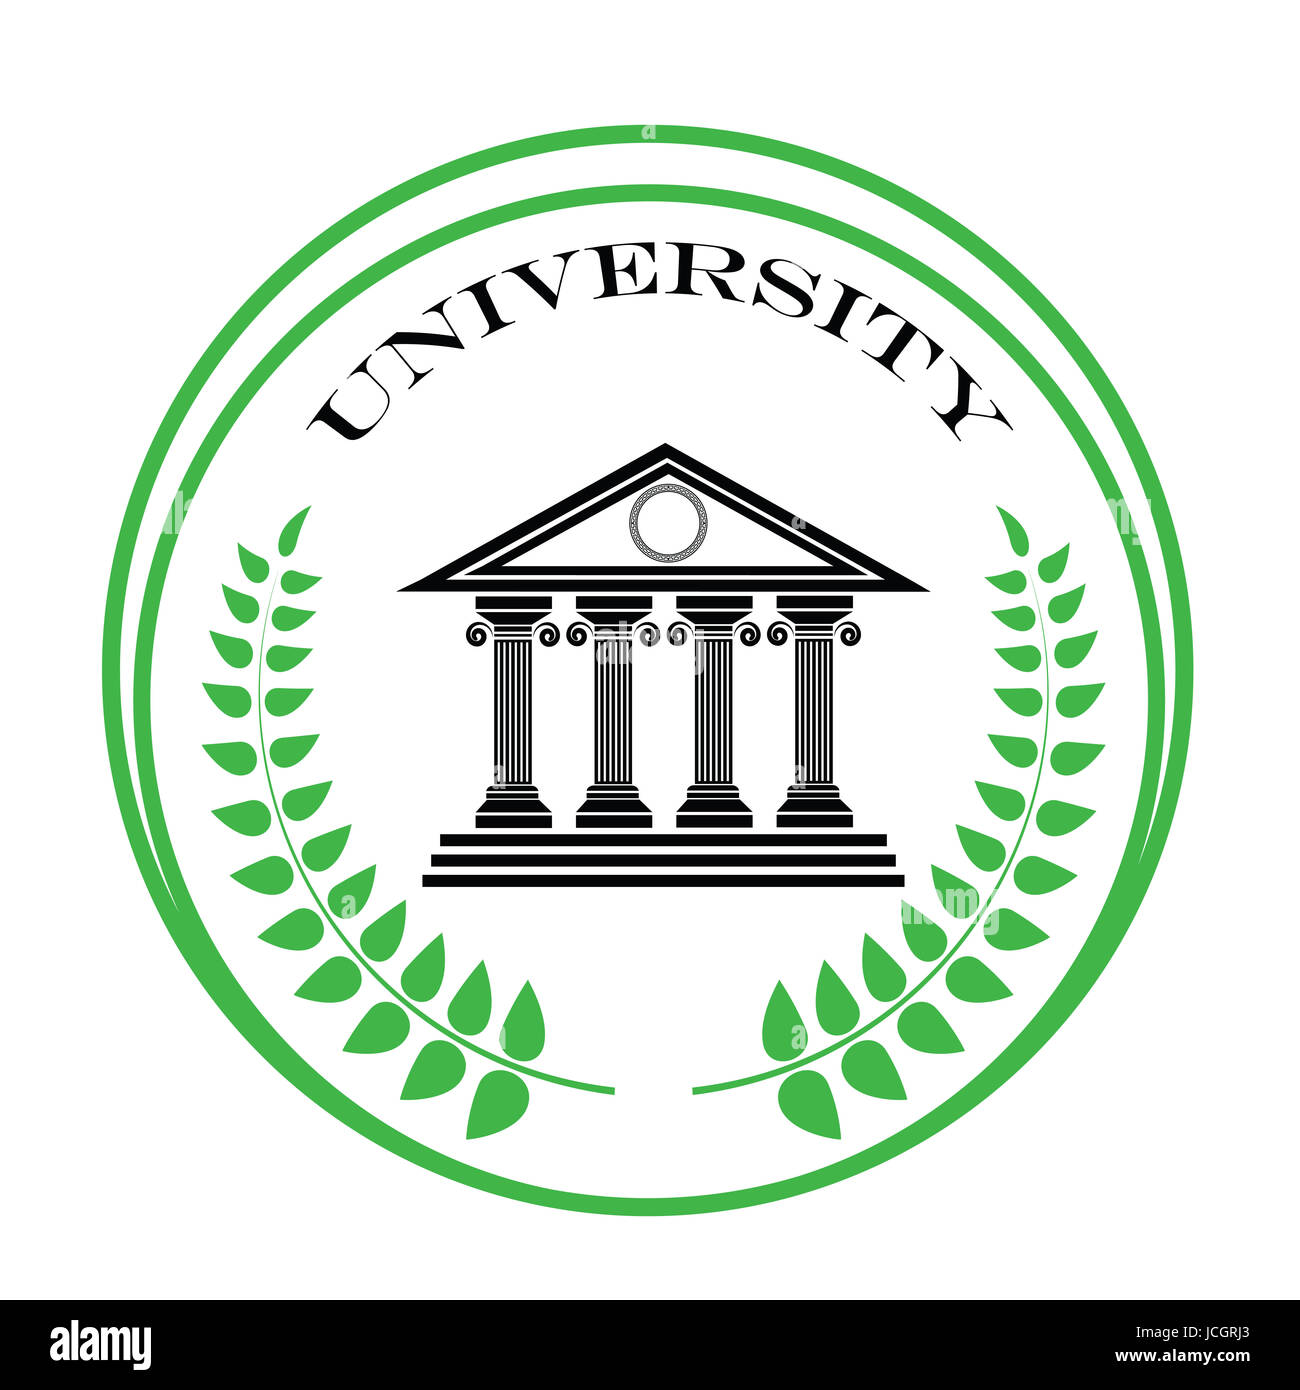 colorful illustration with university symbol on a white background Stock Photo